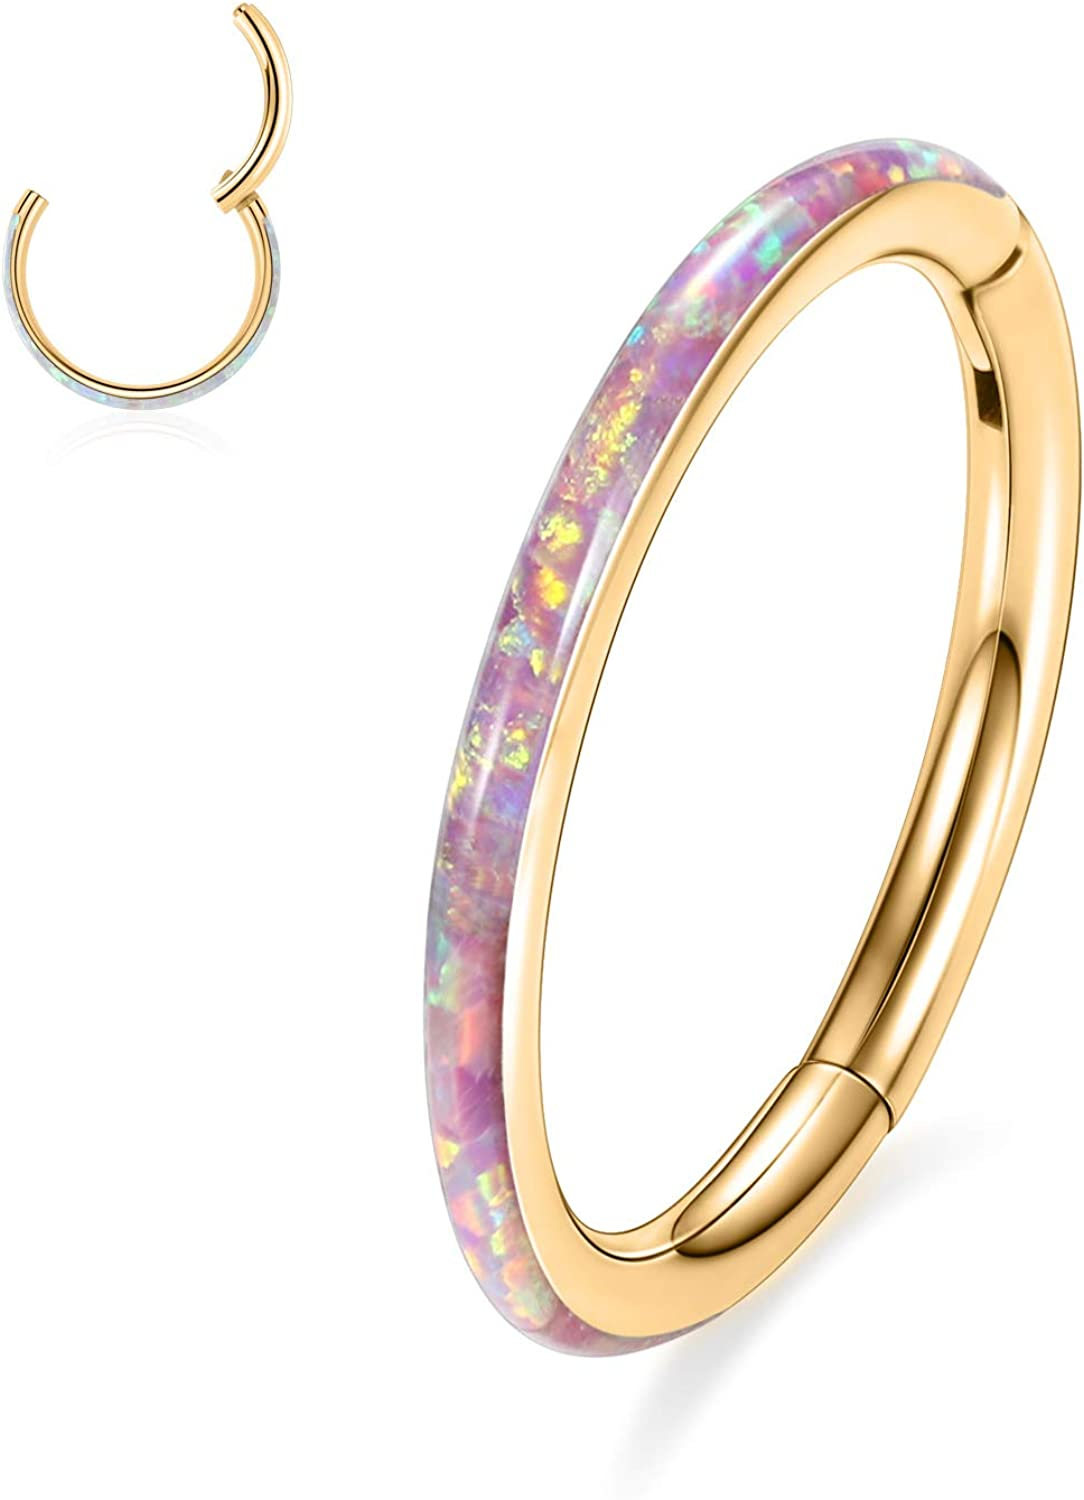 AROWRO Septum Clicker 316L Surgical Steel Opal Hinged Segment Ring Hoop 16G 6/8/10/12mm Cartilage Conch Helix Daith Rook Tragus Earrings Nose Rings